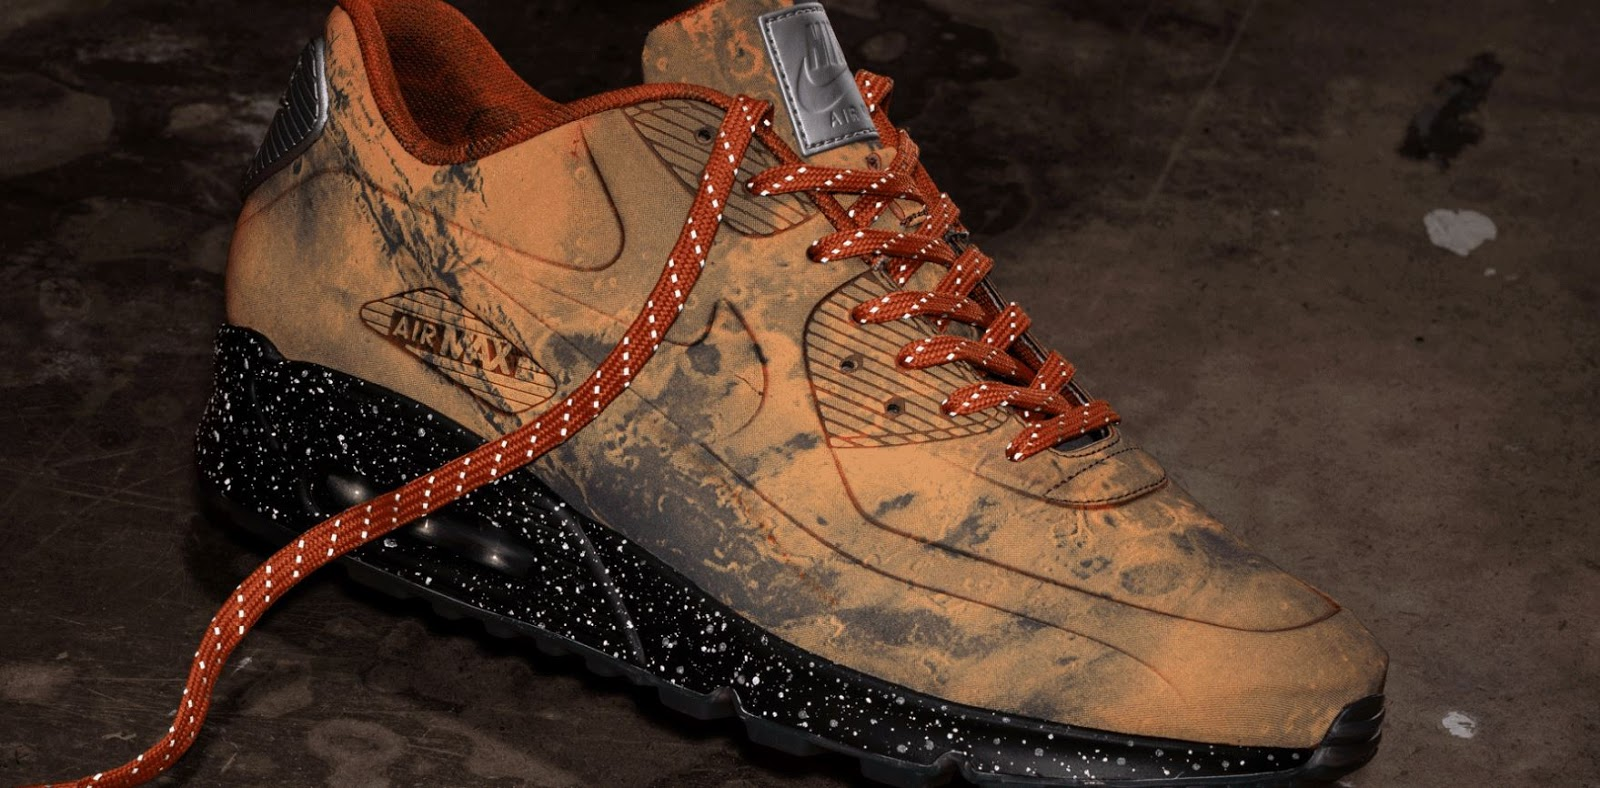 best sneakers 7a2ed b6e75 The new Nike Air Max 90  Mars Landing  Sneaker will be available today at  10am EST HERE at Nike. While celebrating the past, this special-edition Air  Max 90 ...